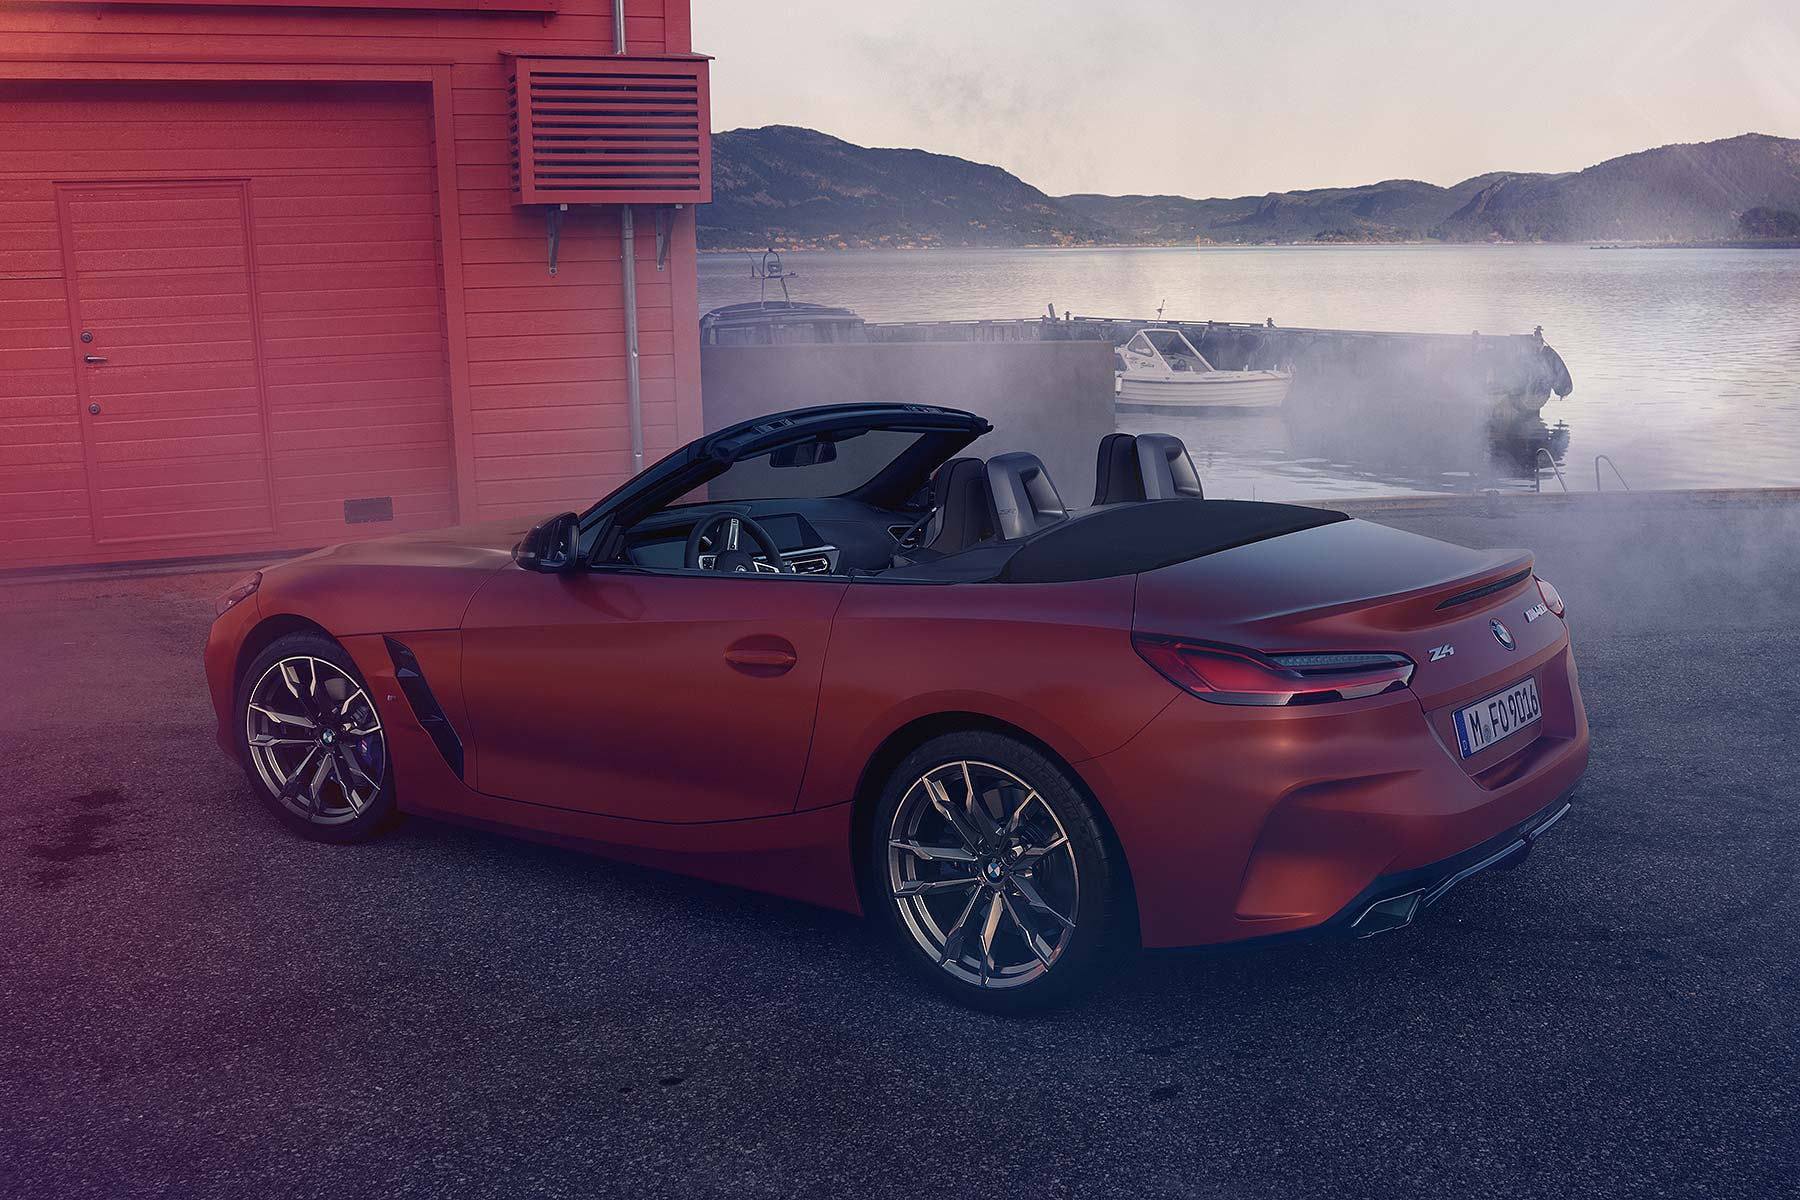 new 2019 bmw z4 revealed at pebble beach. Black Bedroom Furniture Sets. Home Design Ideas